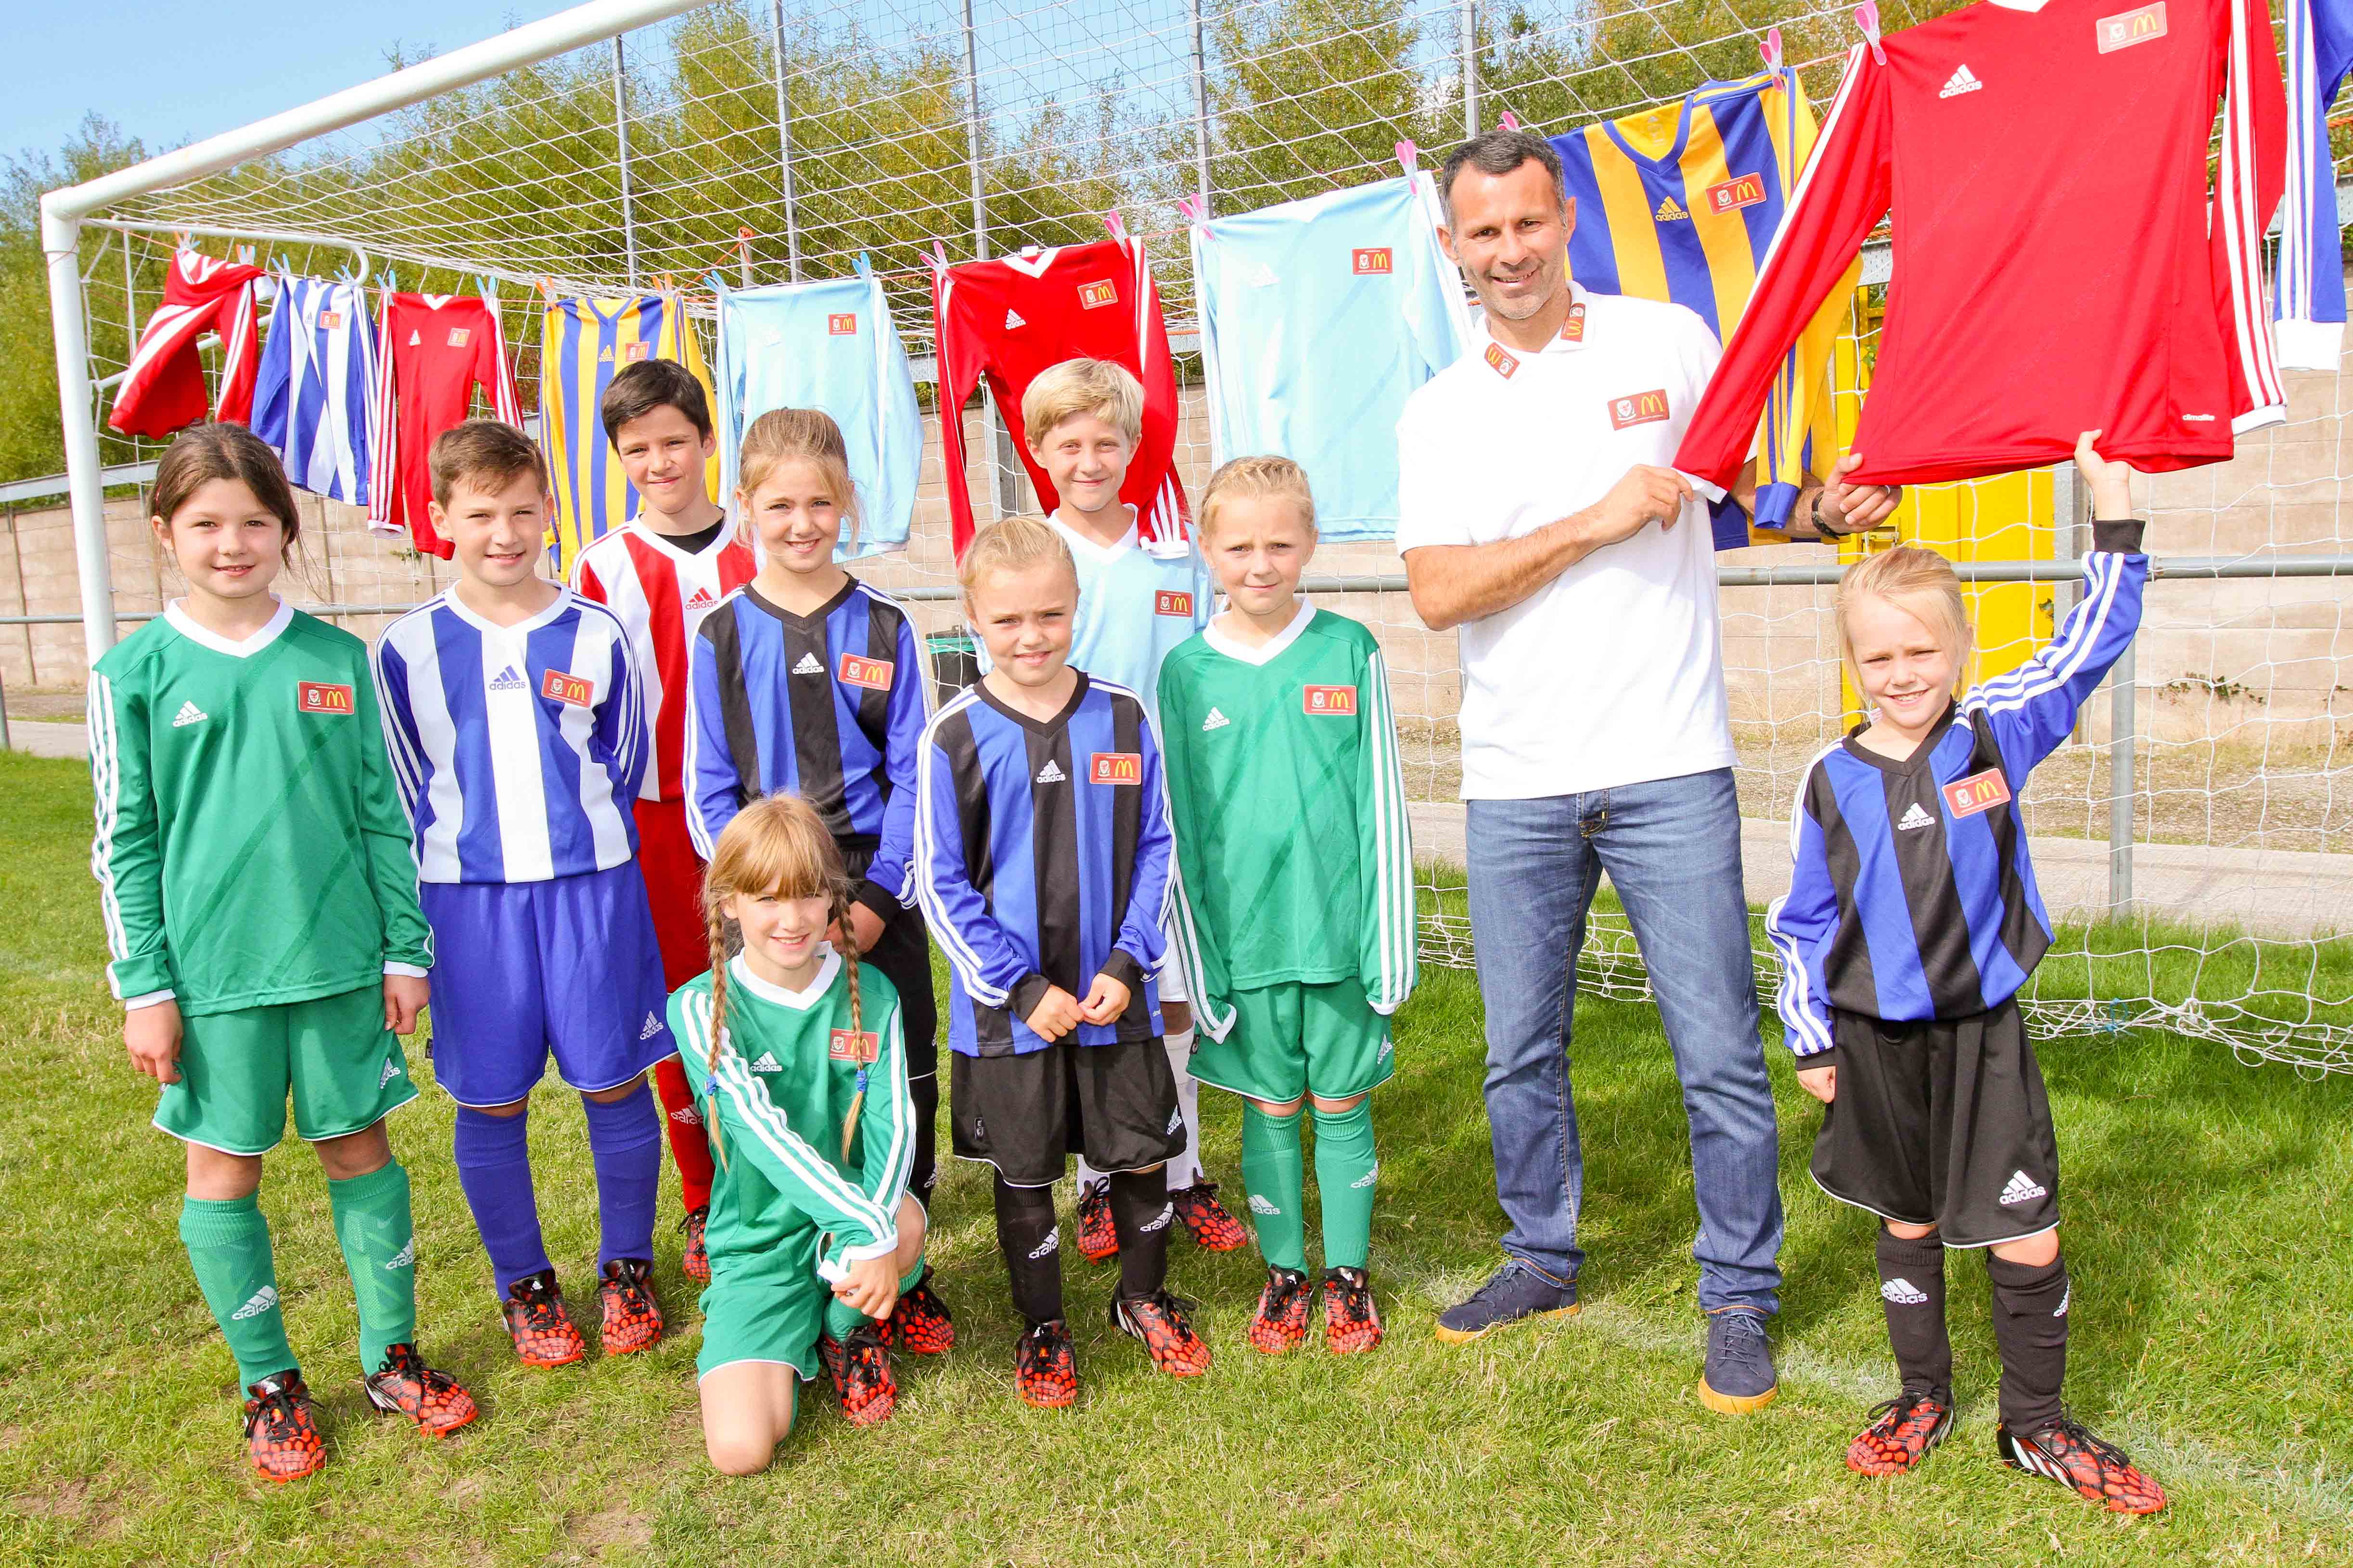 McDonald's Offers 70,000 Free Kits to Accredited Grassroots Clubs in the UK